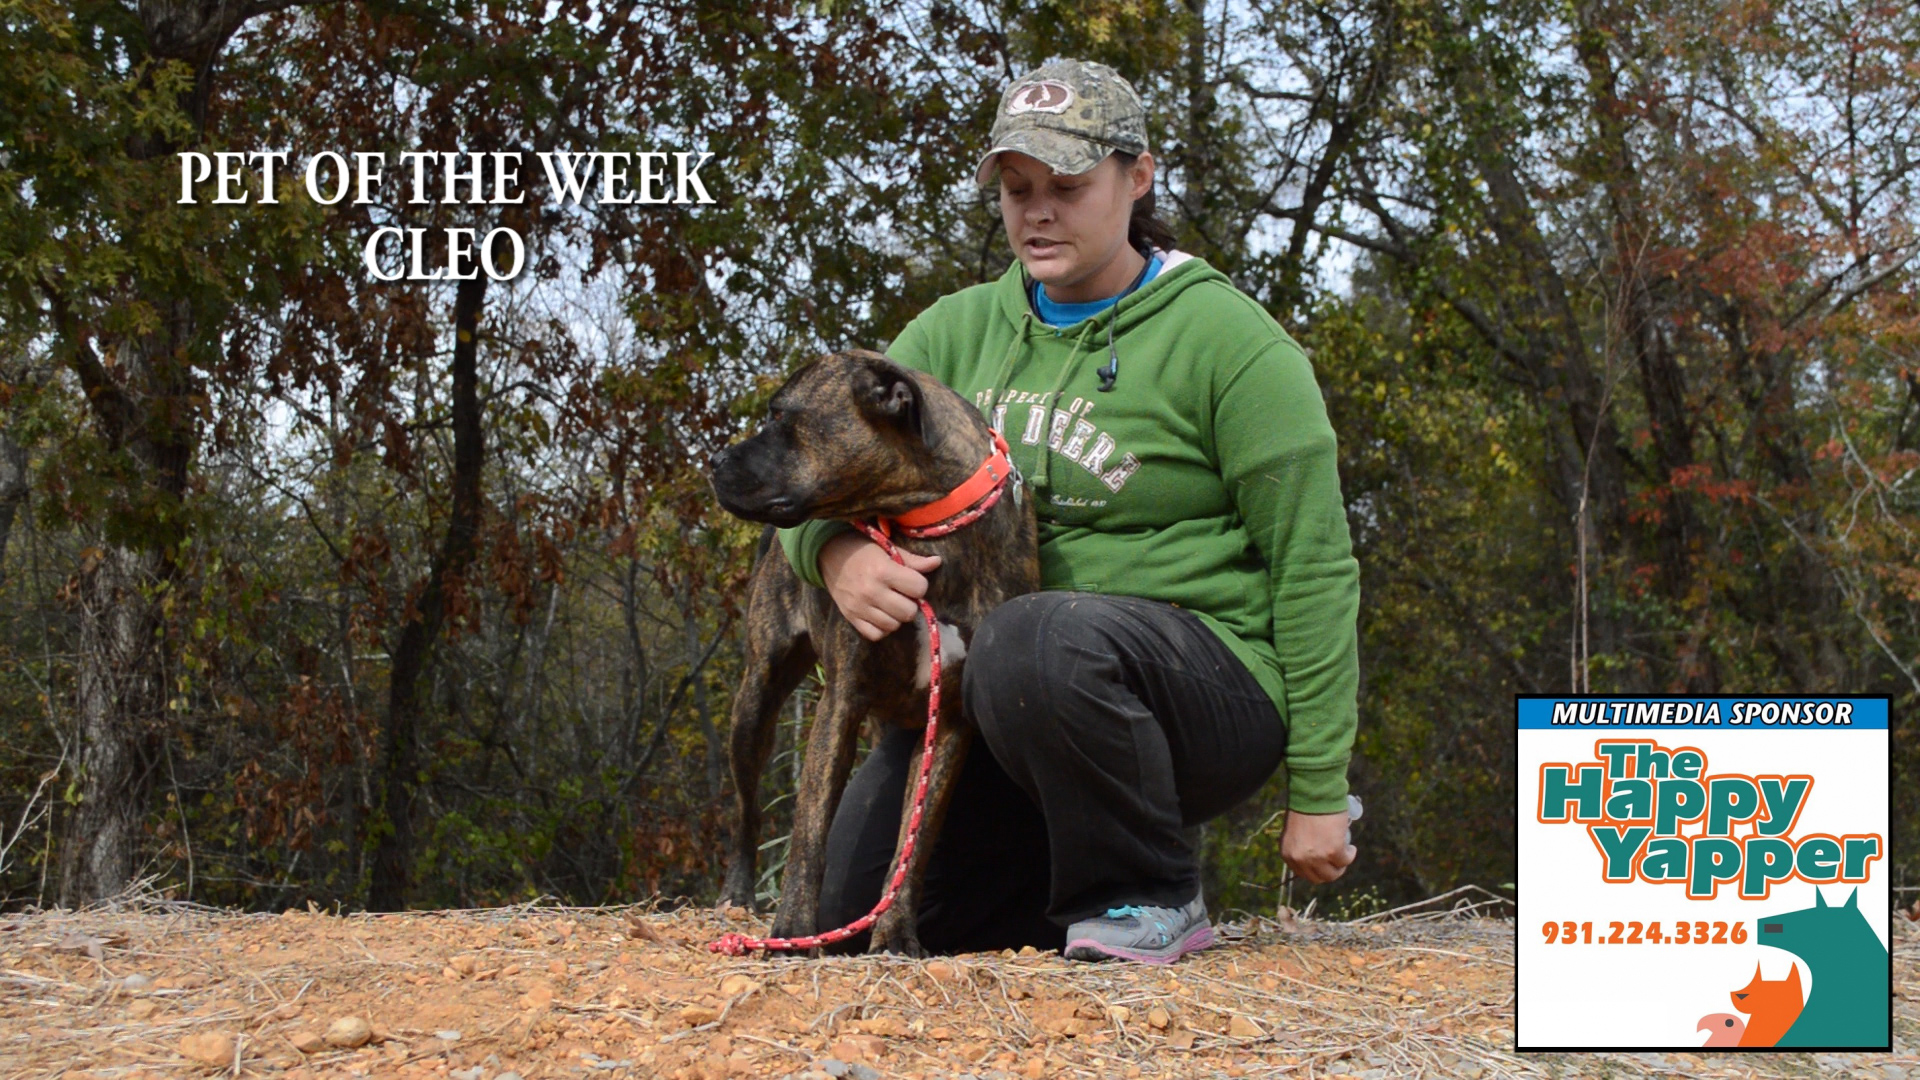 VIDEO: Pet of the Week - Cleo